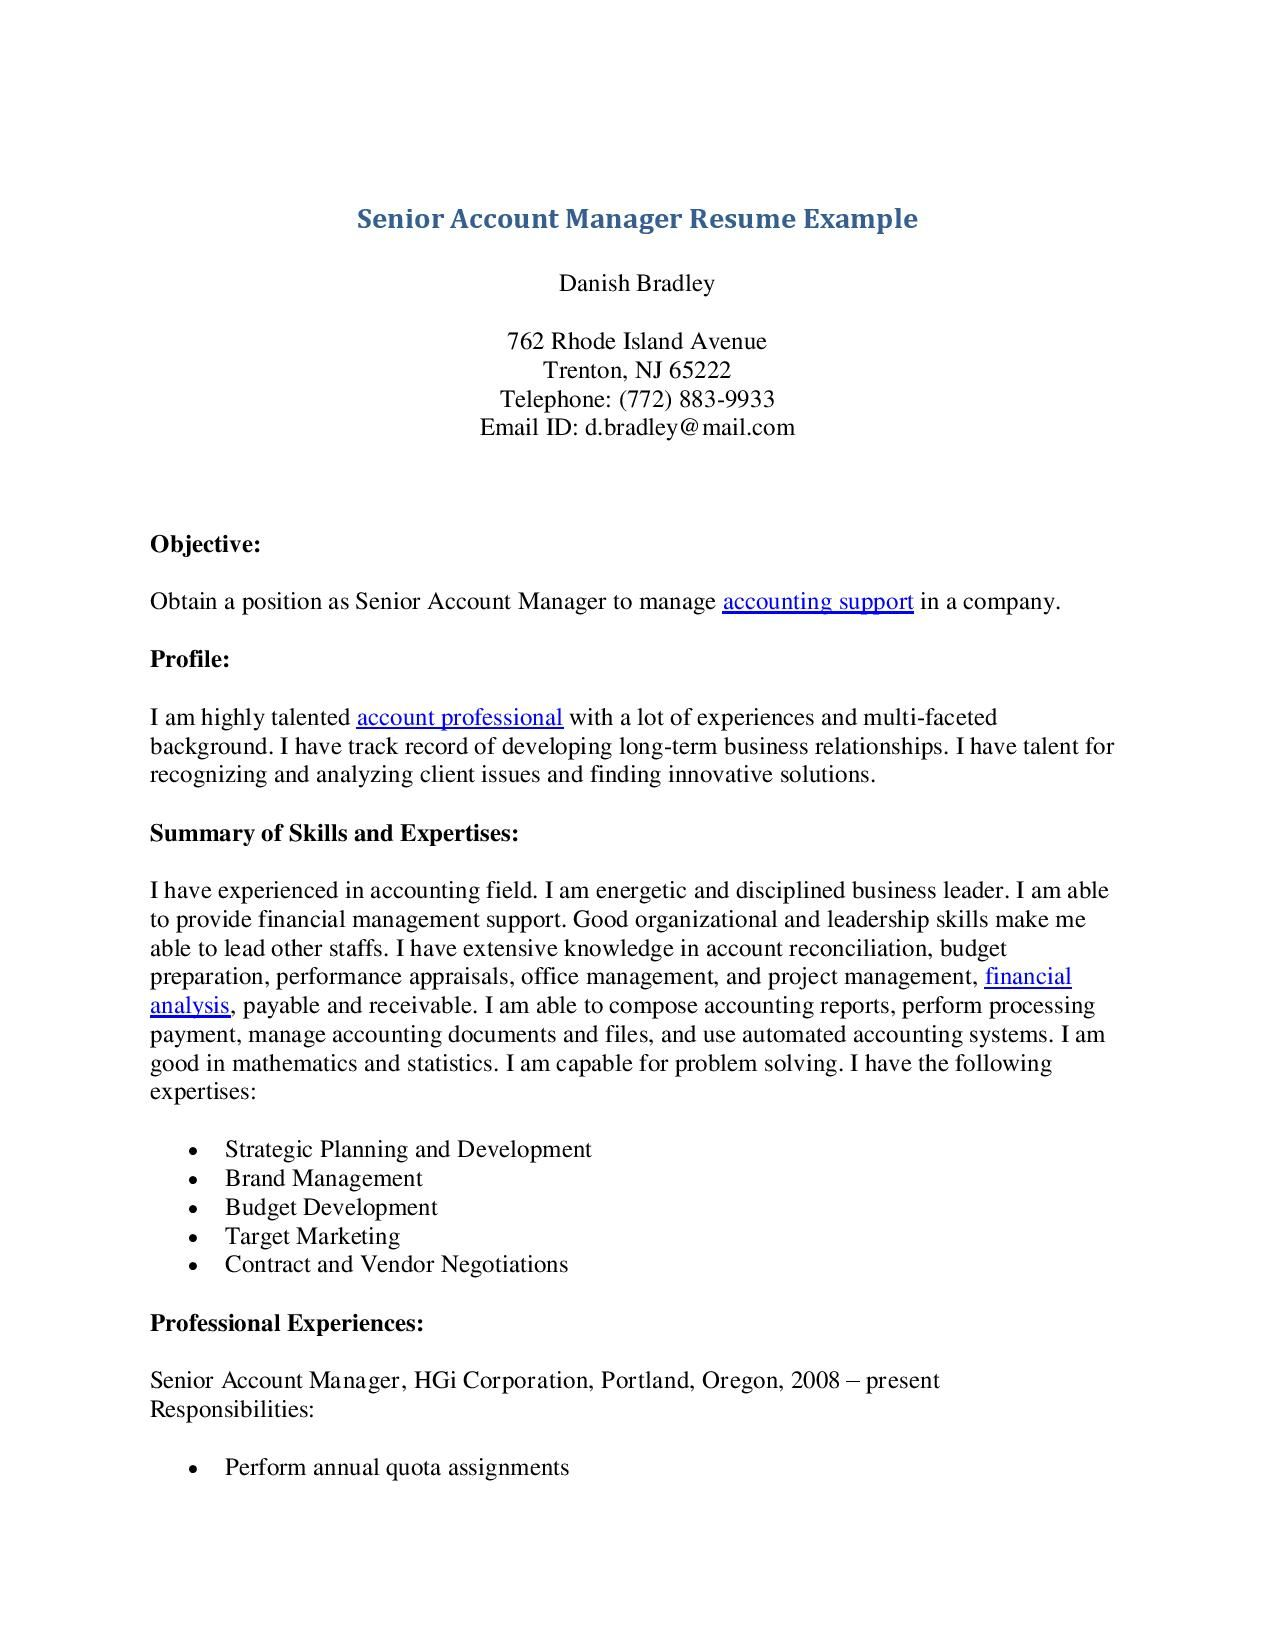 Senior Account Manager Resume Example Senior Account Manager